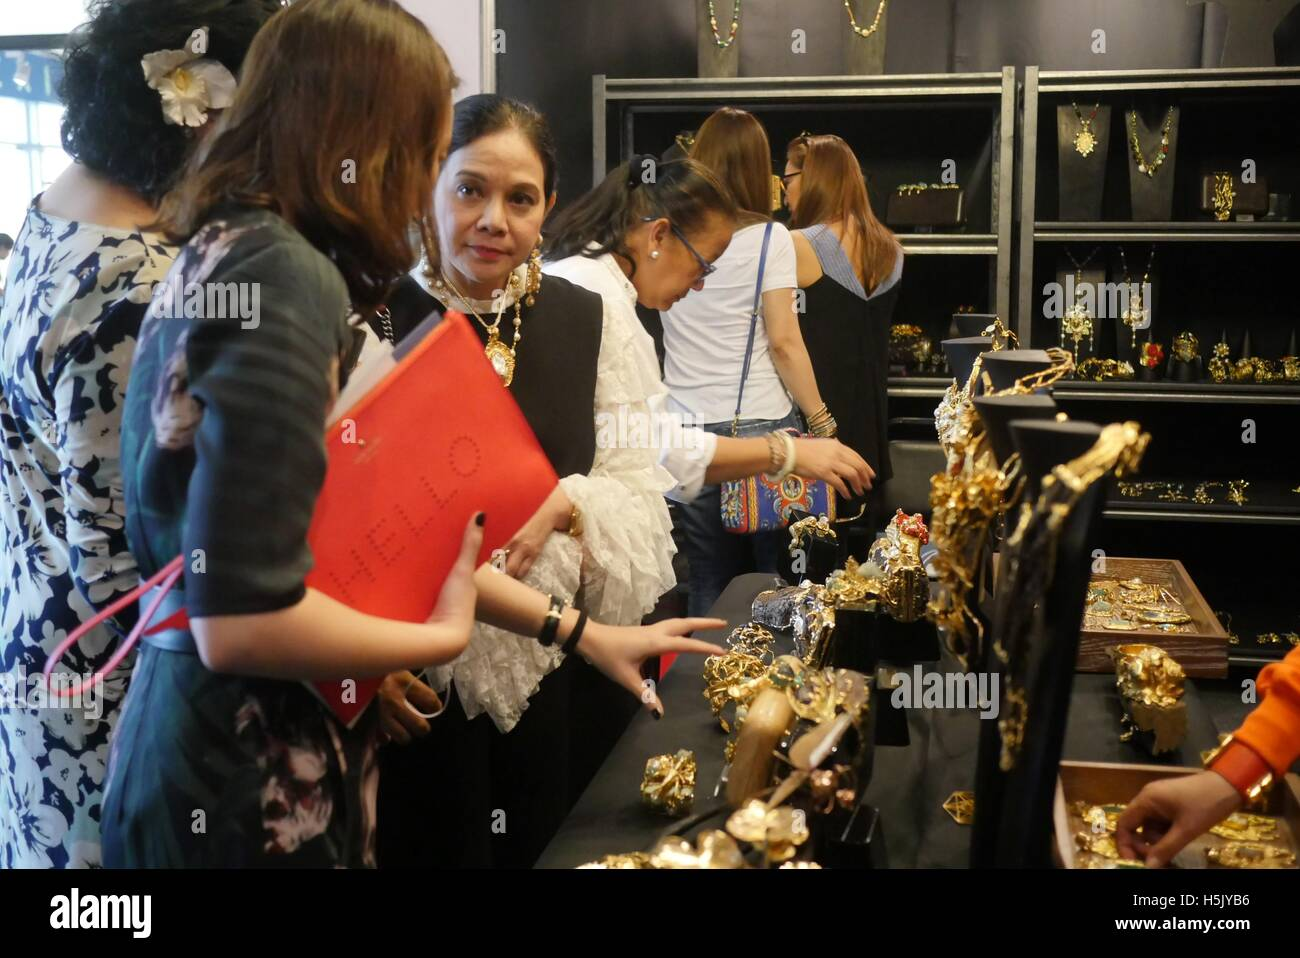 Pasay, Philippines. 20th Oct, 2016. Ann Ong a fashion accessories designer in her booth 'Ann Ong: Definitive - Stock Image